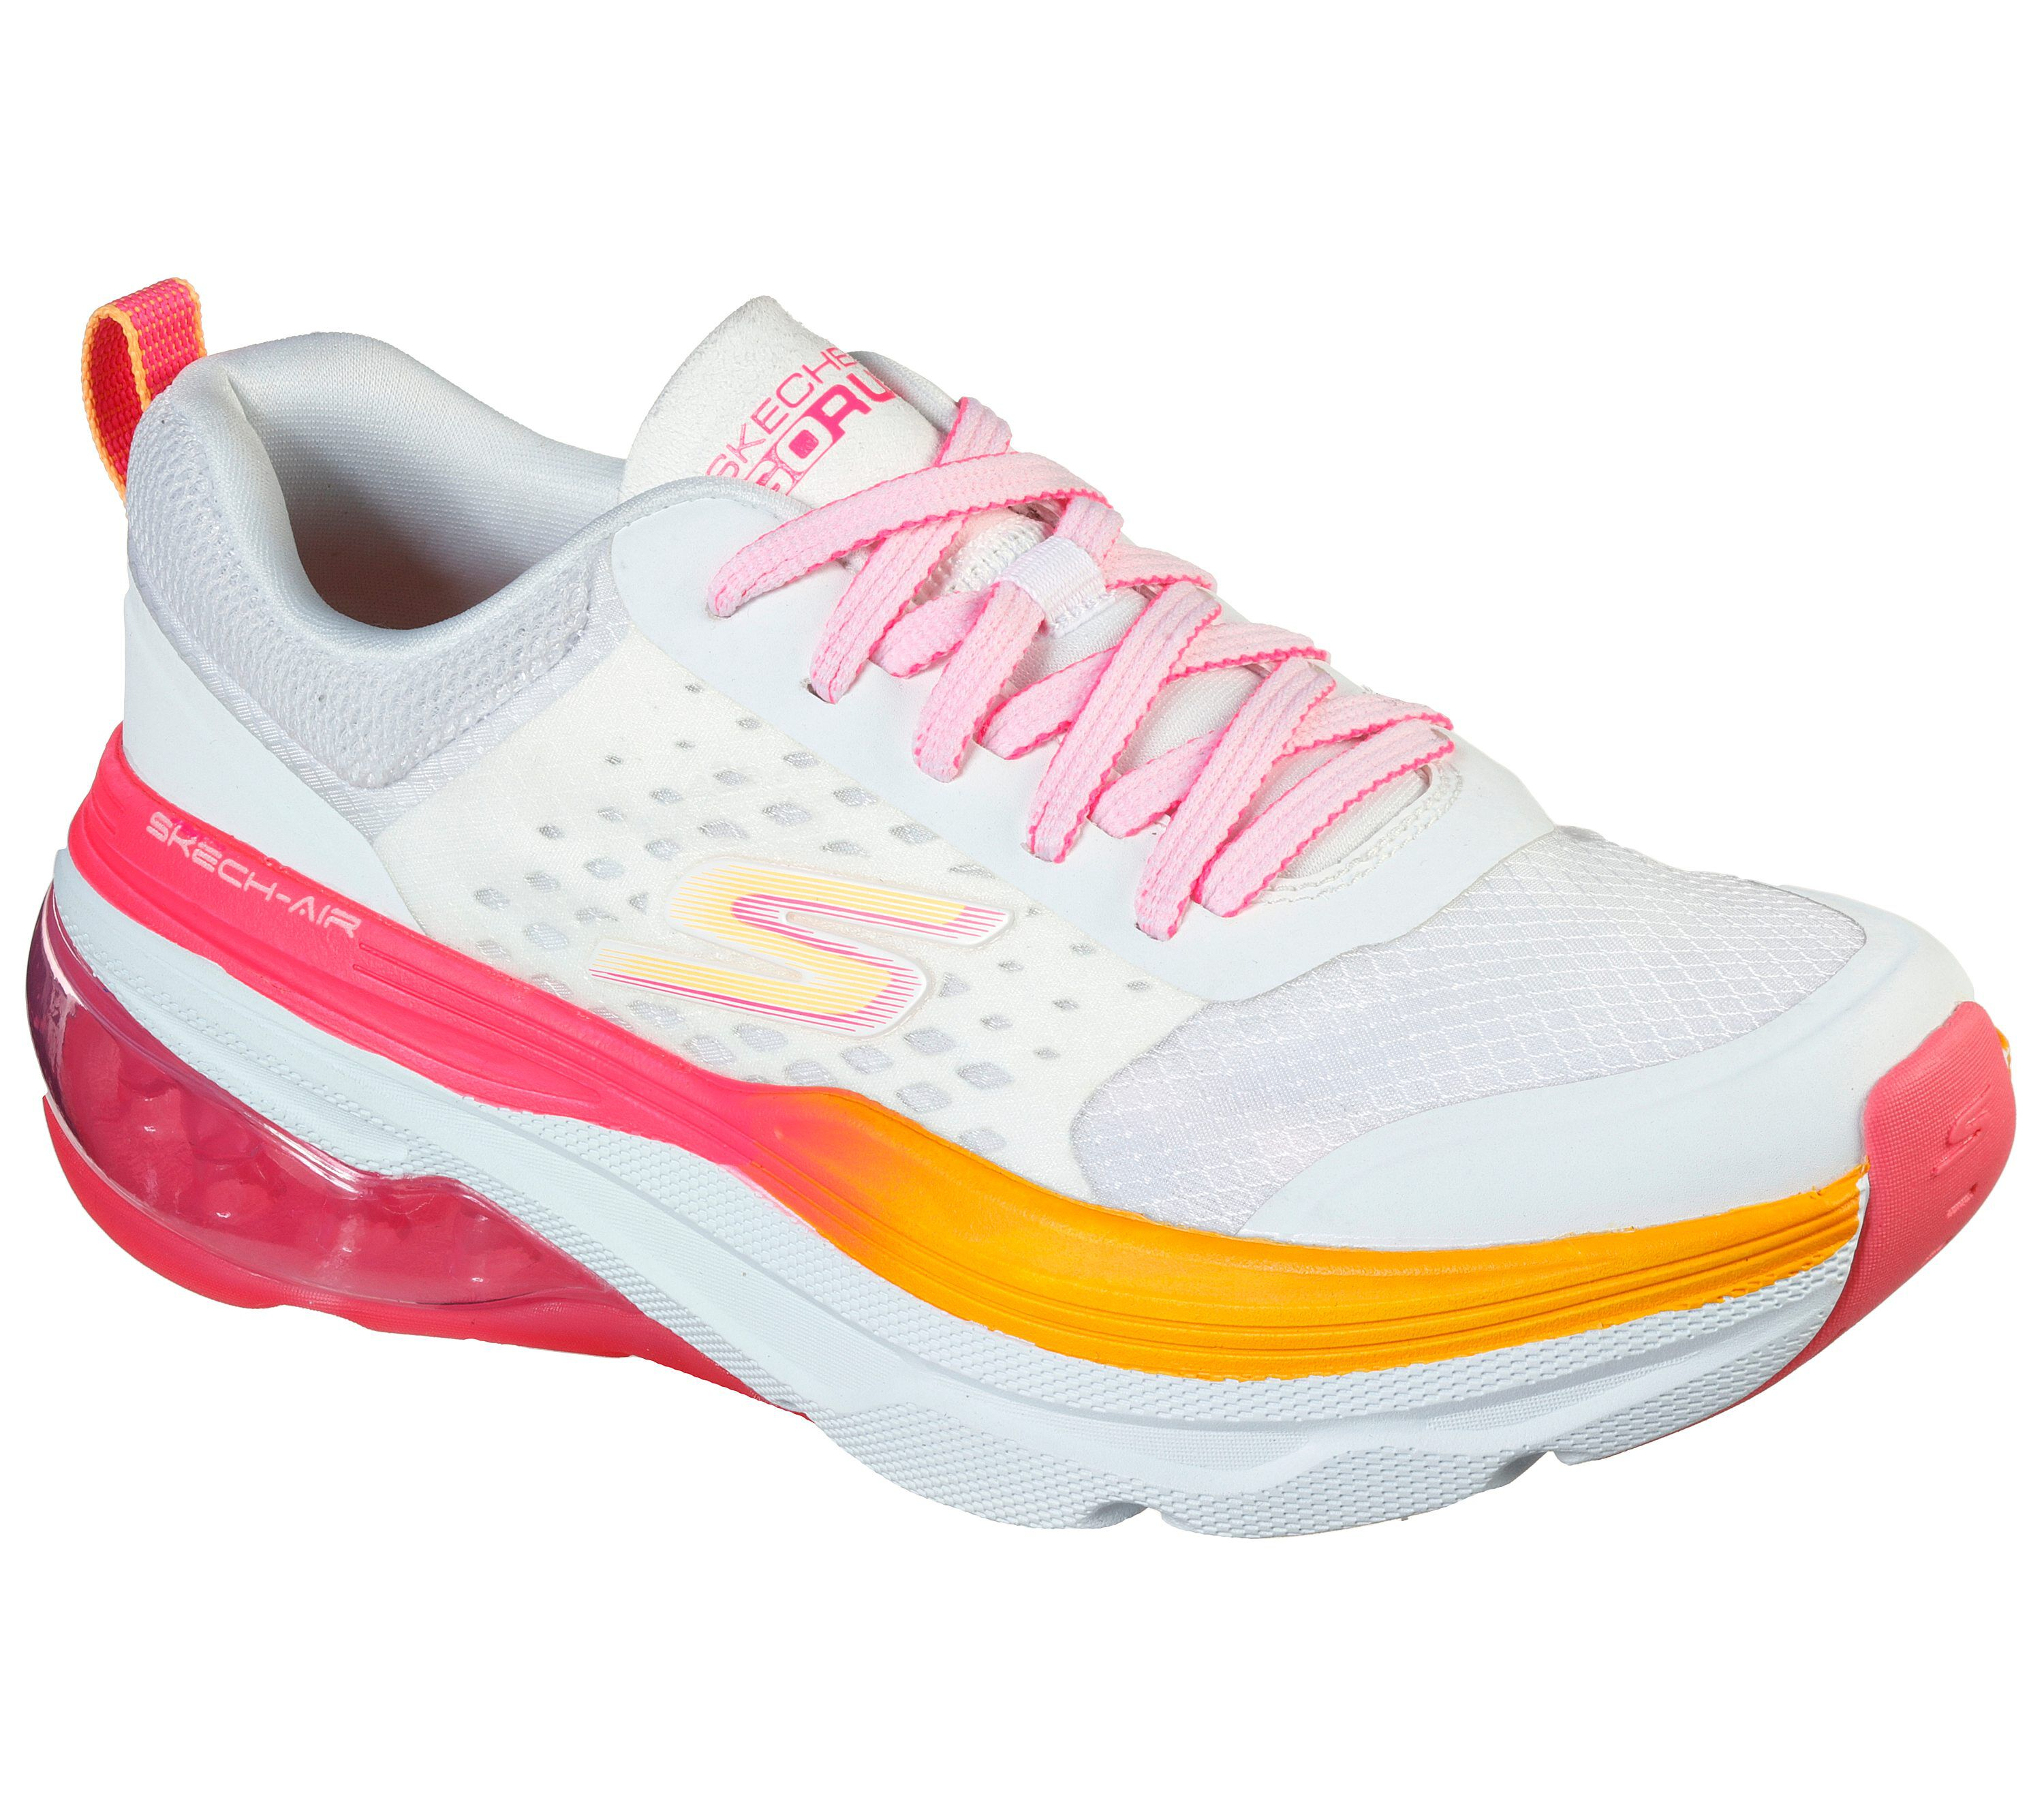 skechers shoes official site